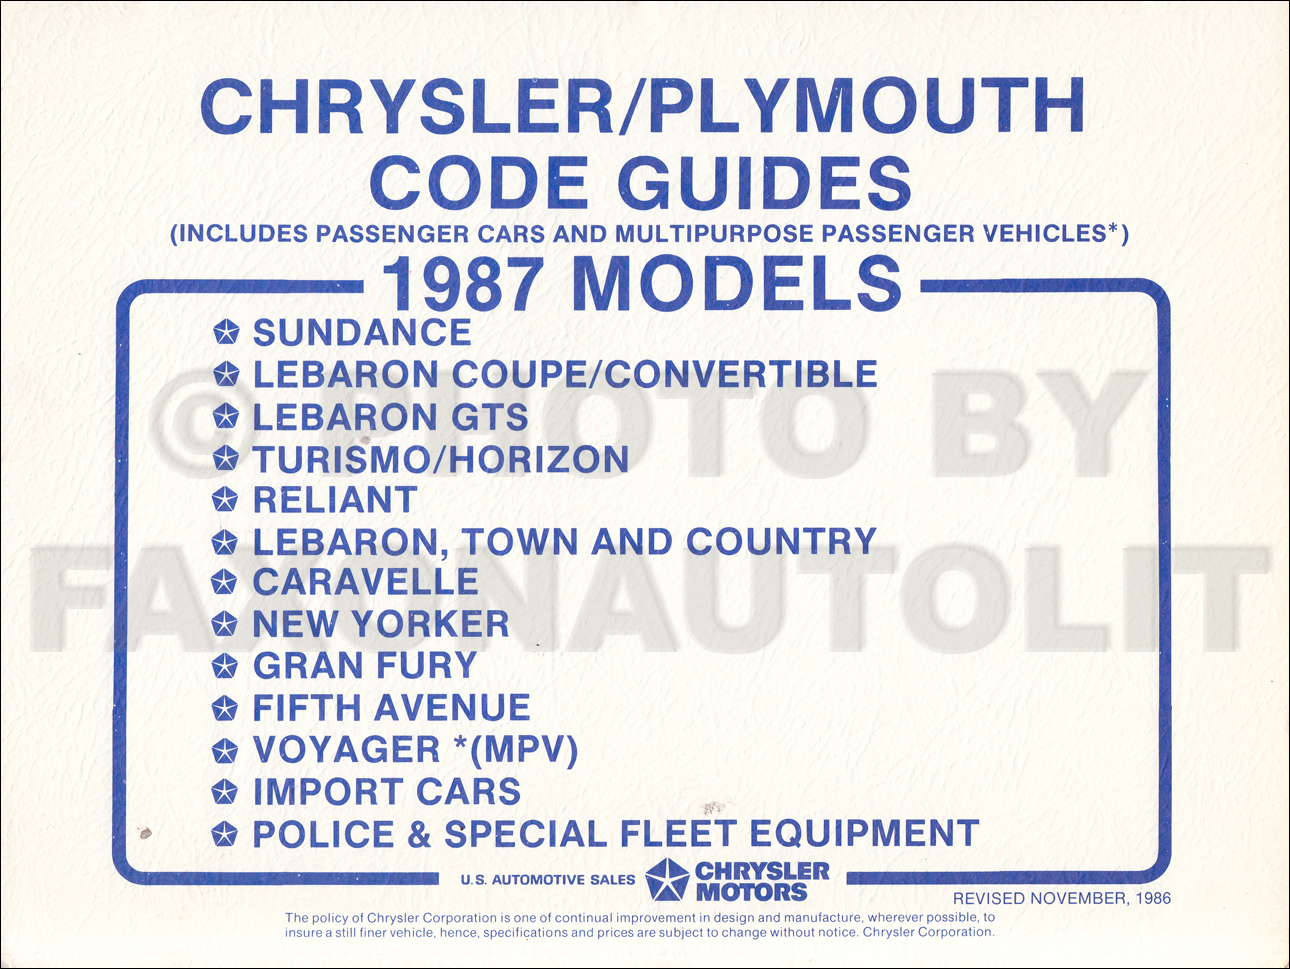 1987 Plymouth & Chrysler Ordering Code Guide Original